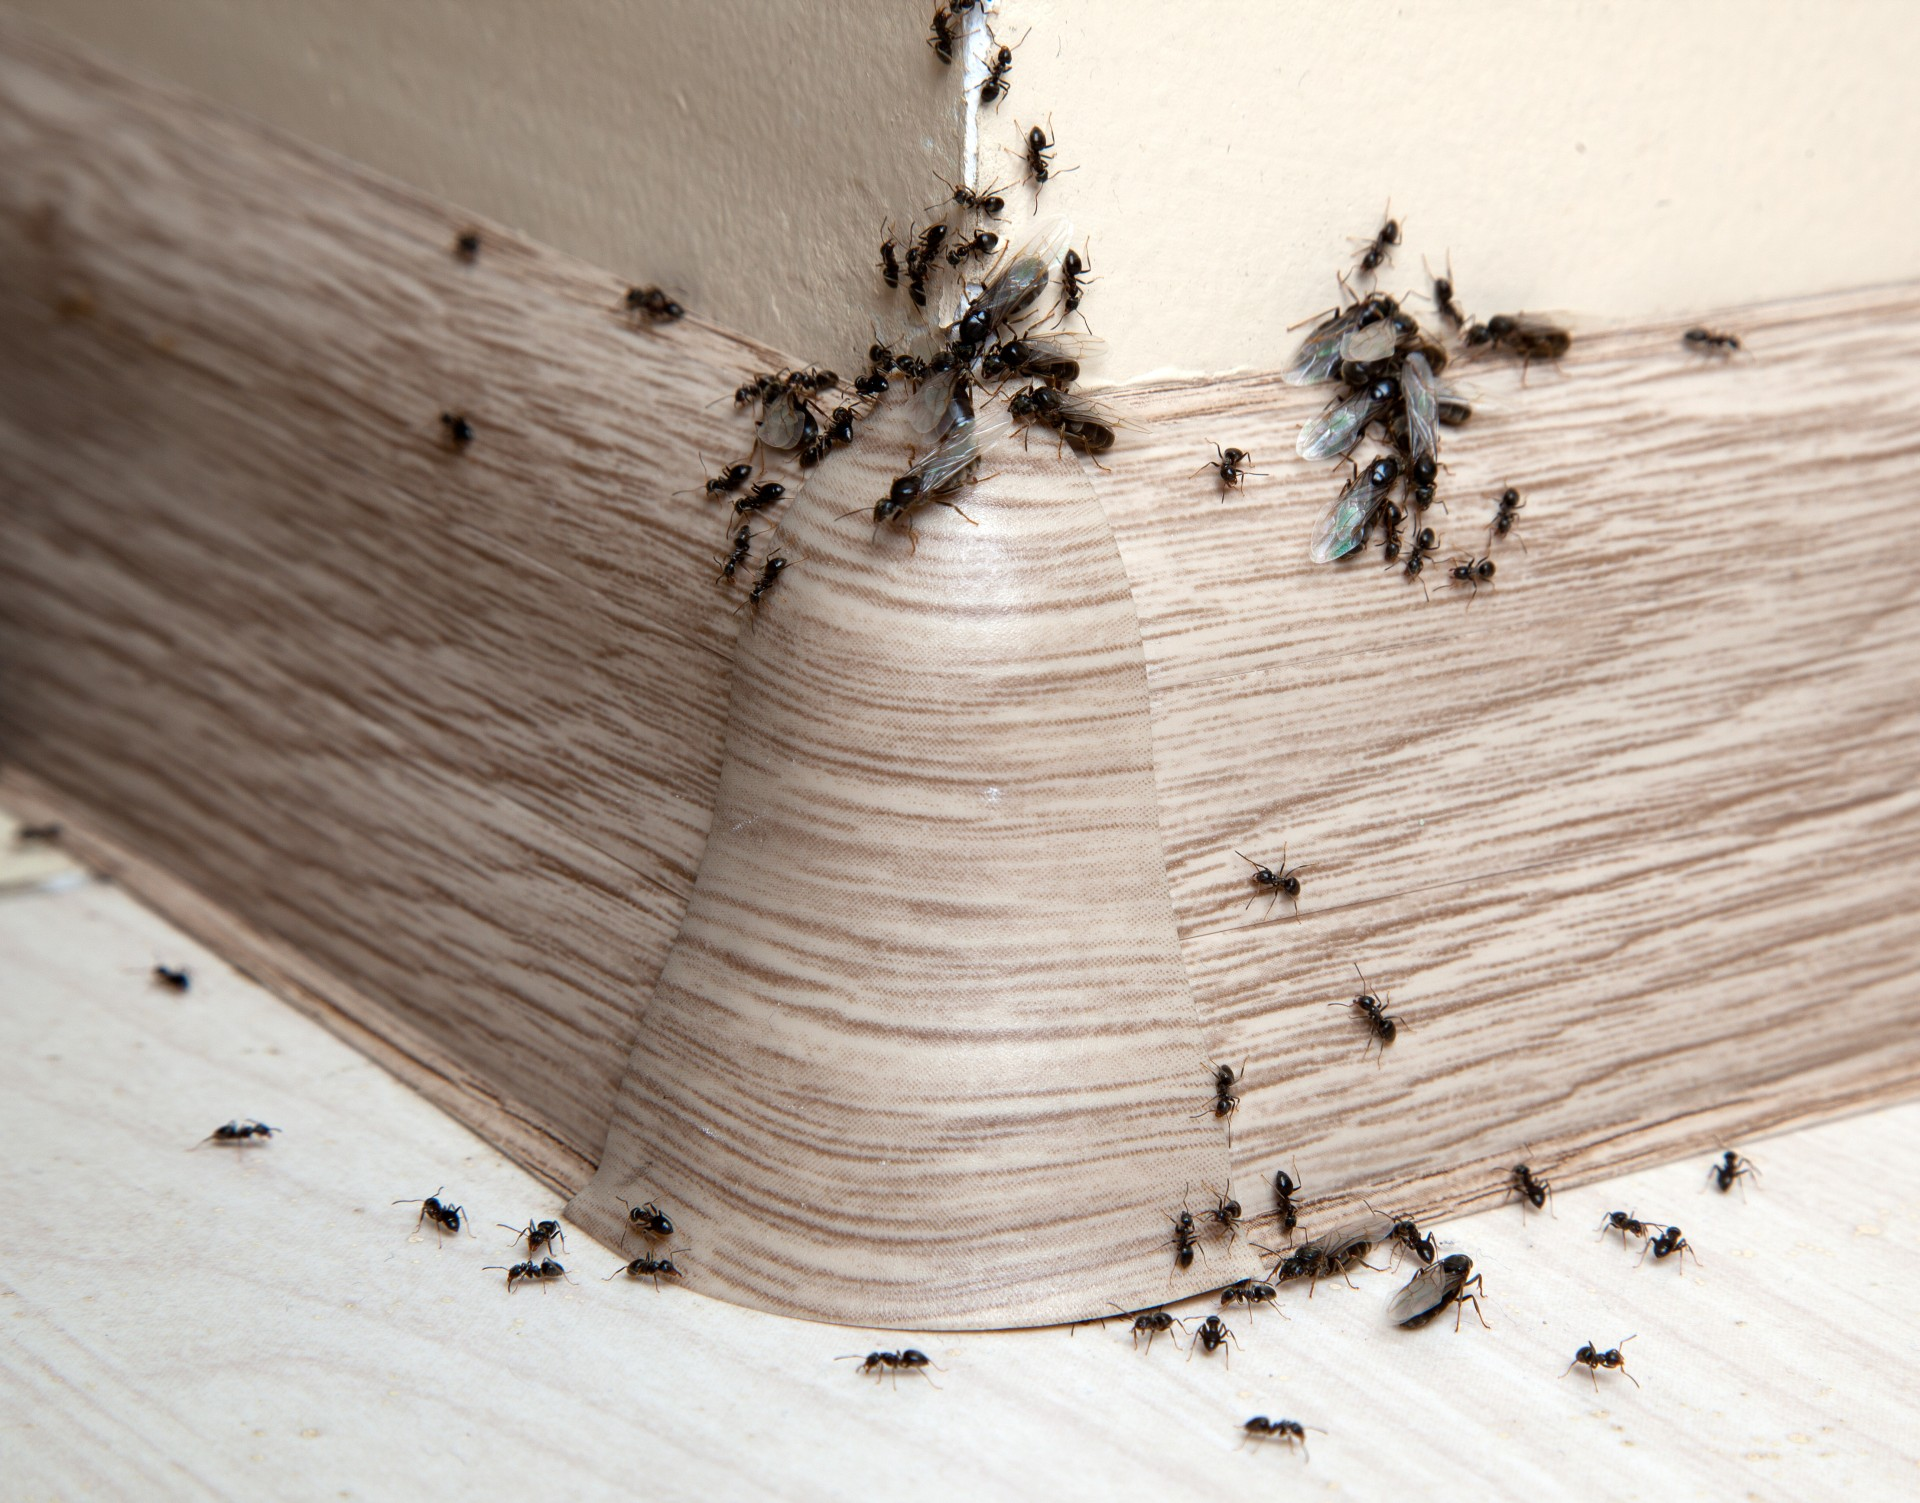 Ant Infestation, Pest Control in Bermondsey, Borough, Southwark, SE1. Call Now 020 8166 9746